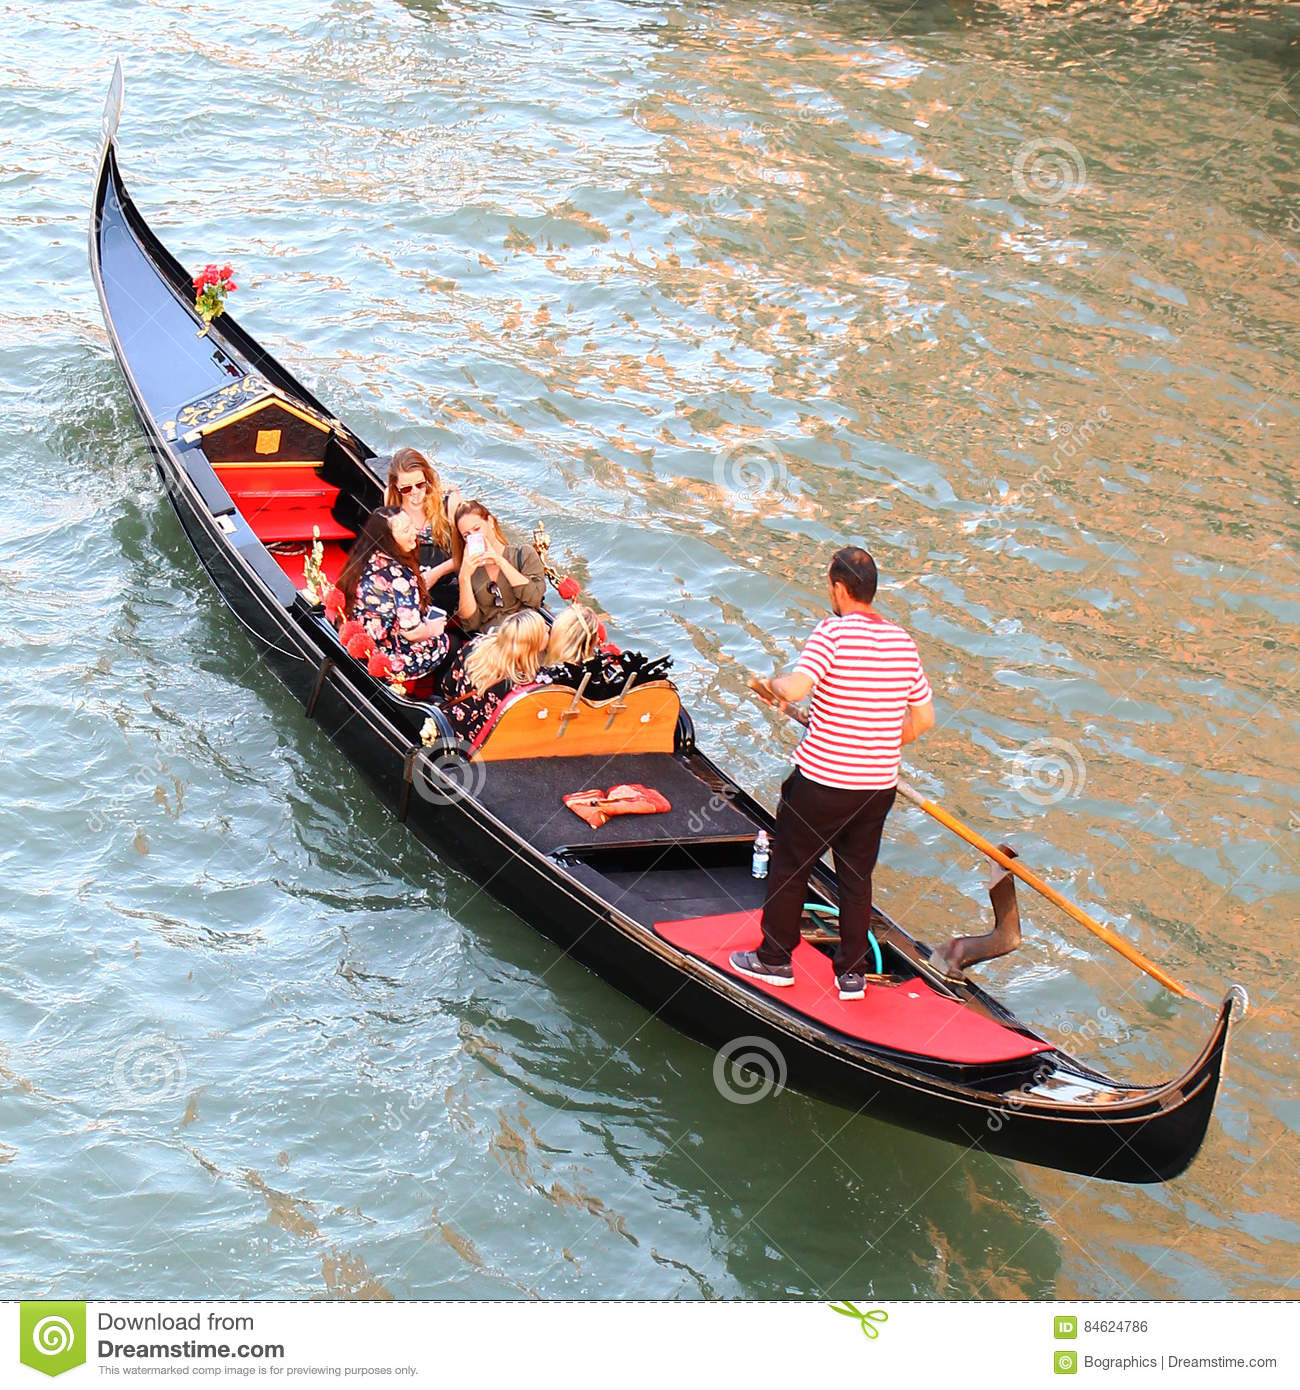 Venice gondola on water with people, from top